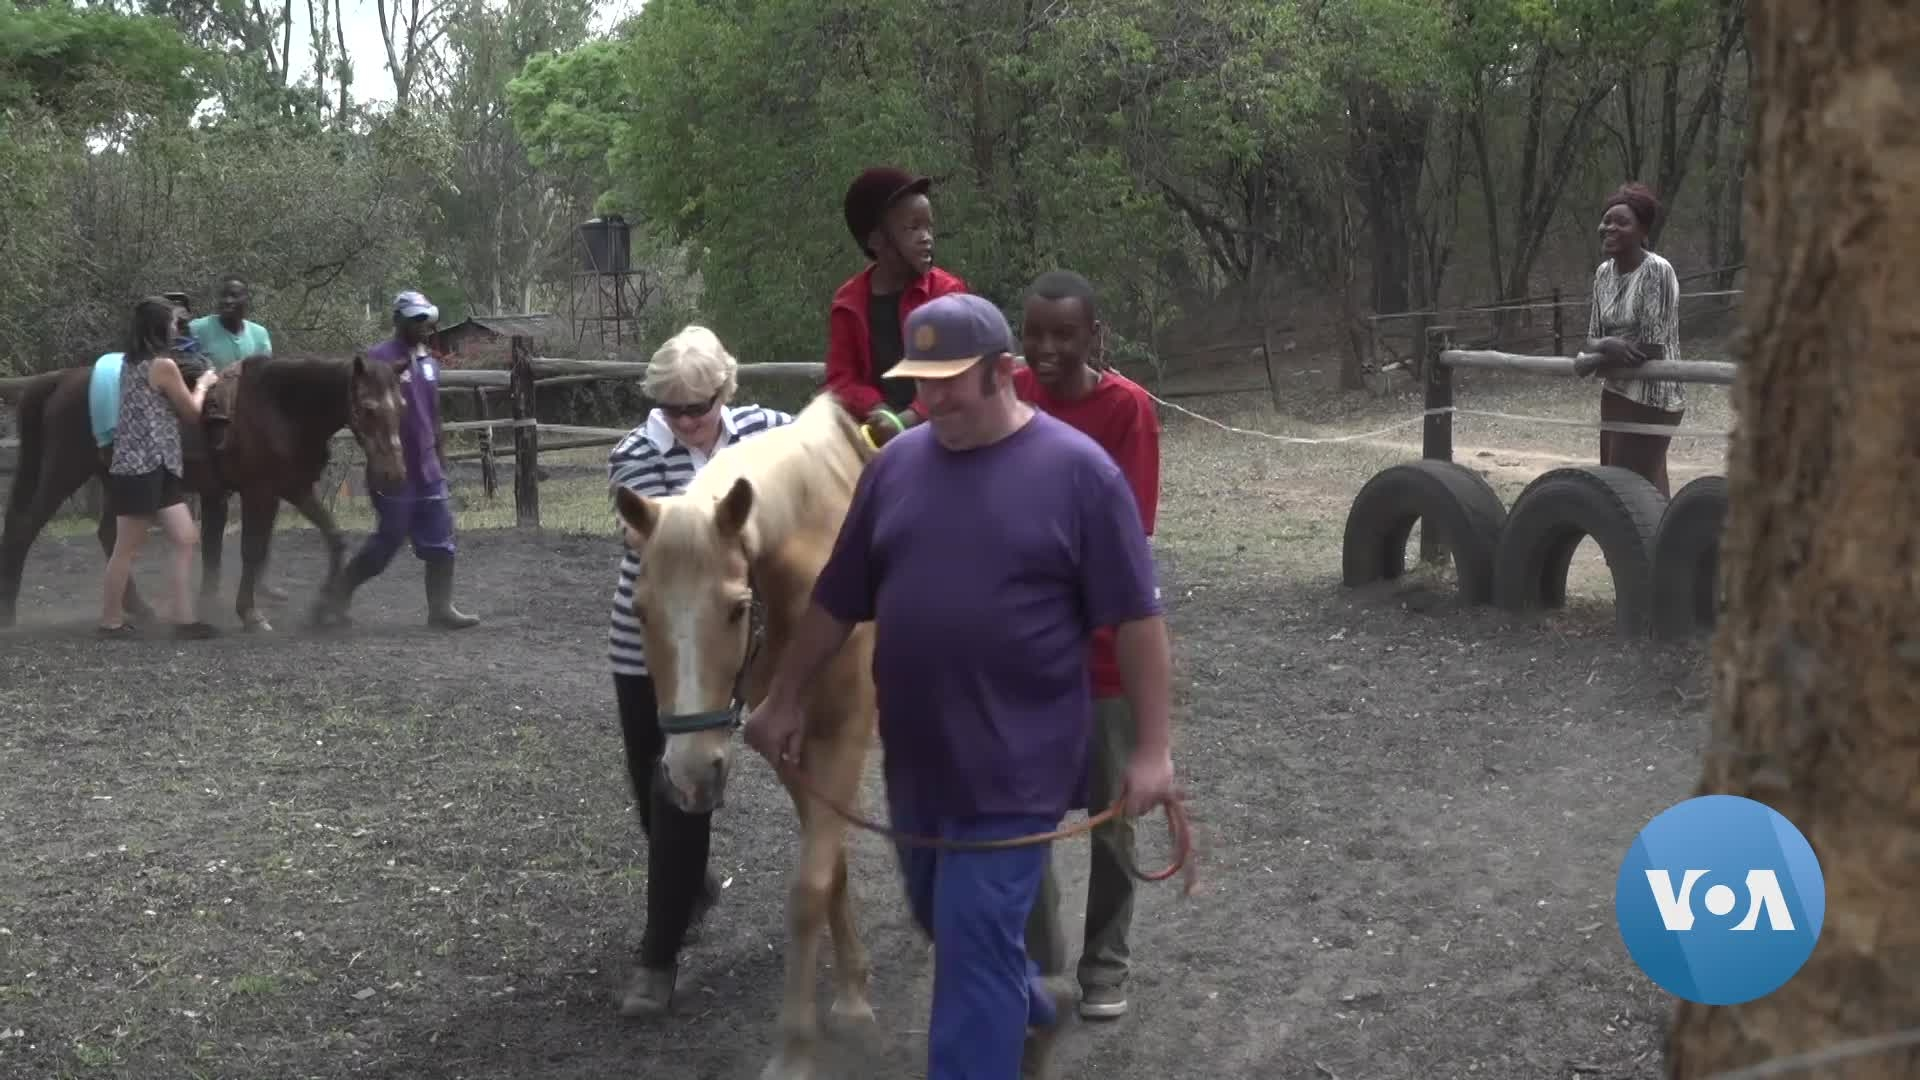 Horses Aid in Therapy for Some With Disabilities in Zimbabwe